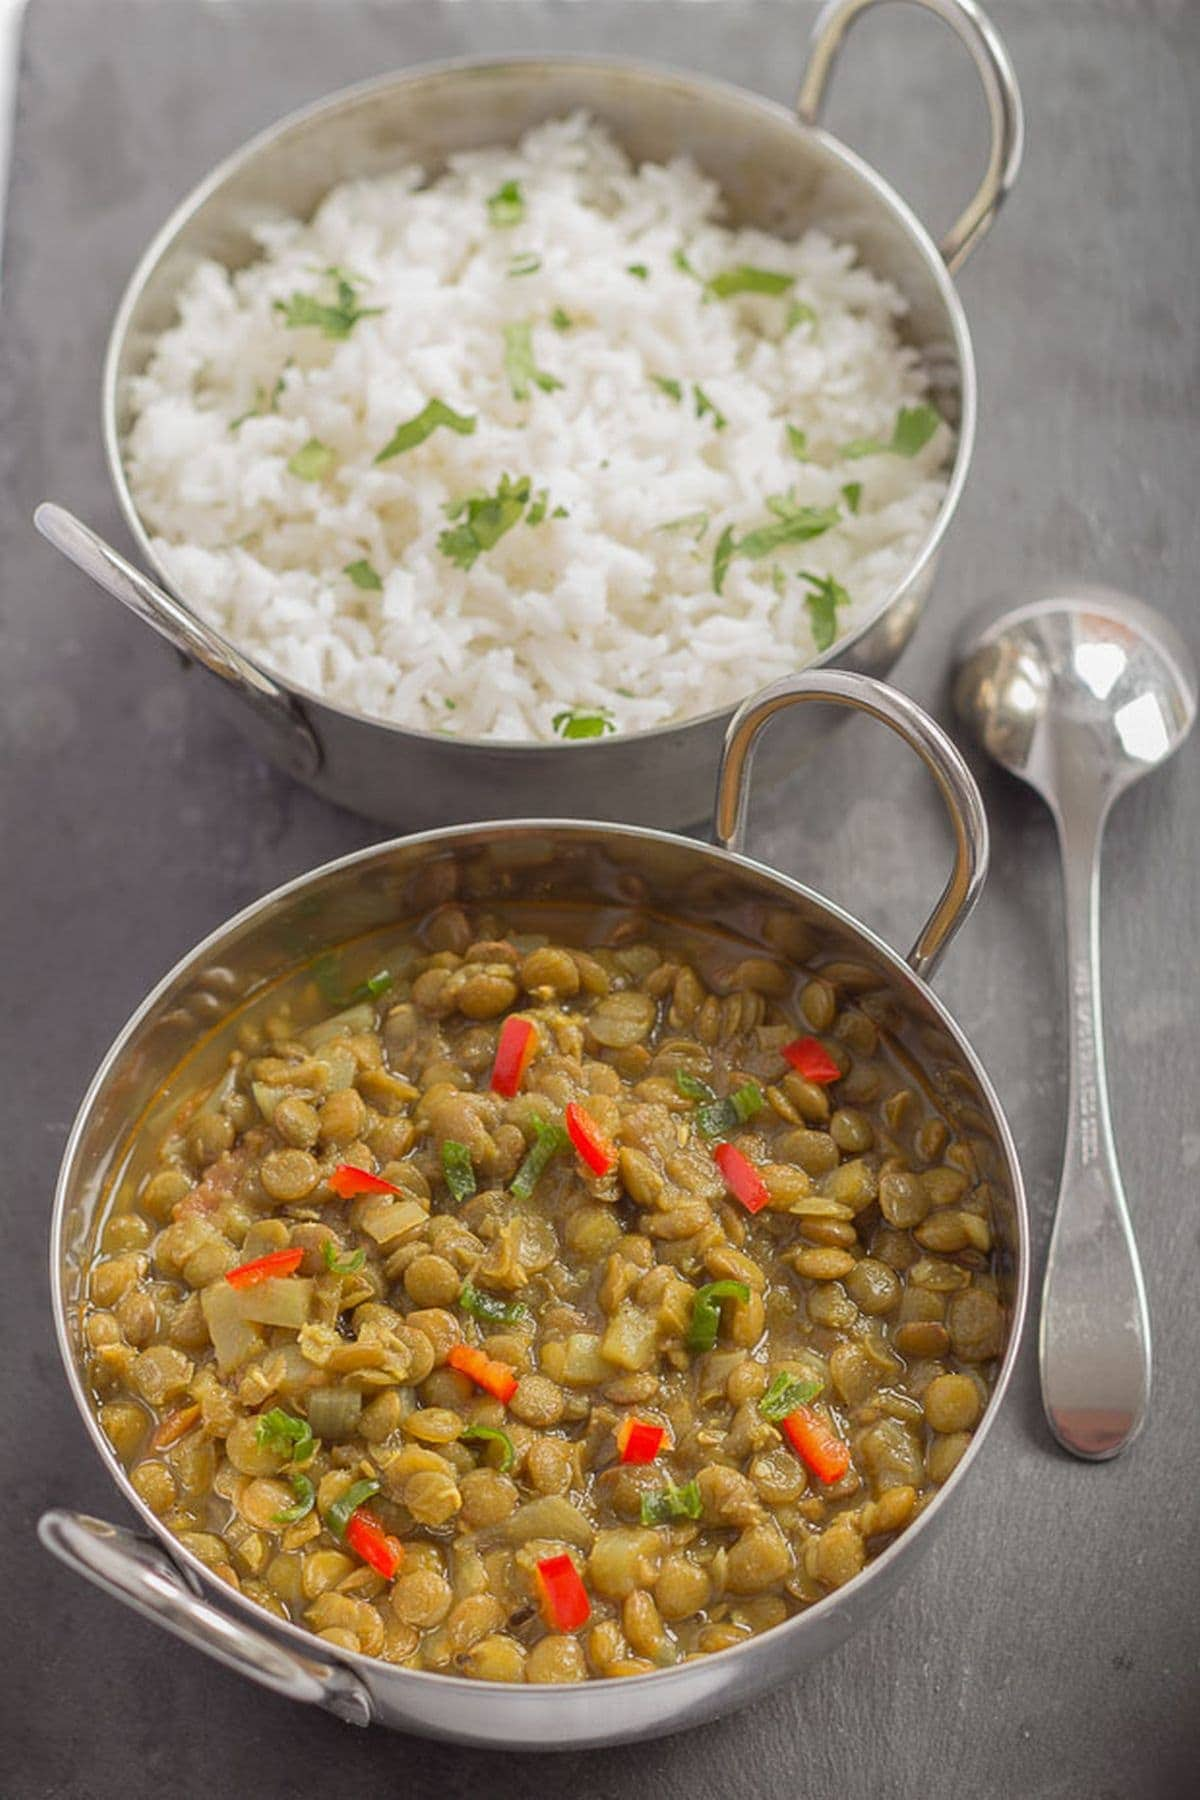 Two balti dishes one in front of the other. Front balti dish has green lentil dahl in it and the back one has bismati rice garnished with chopped coriander.